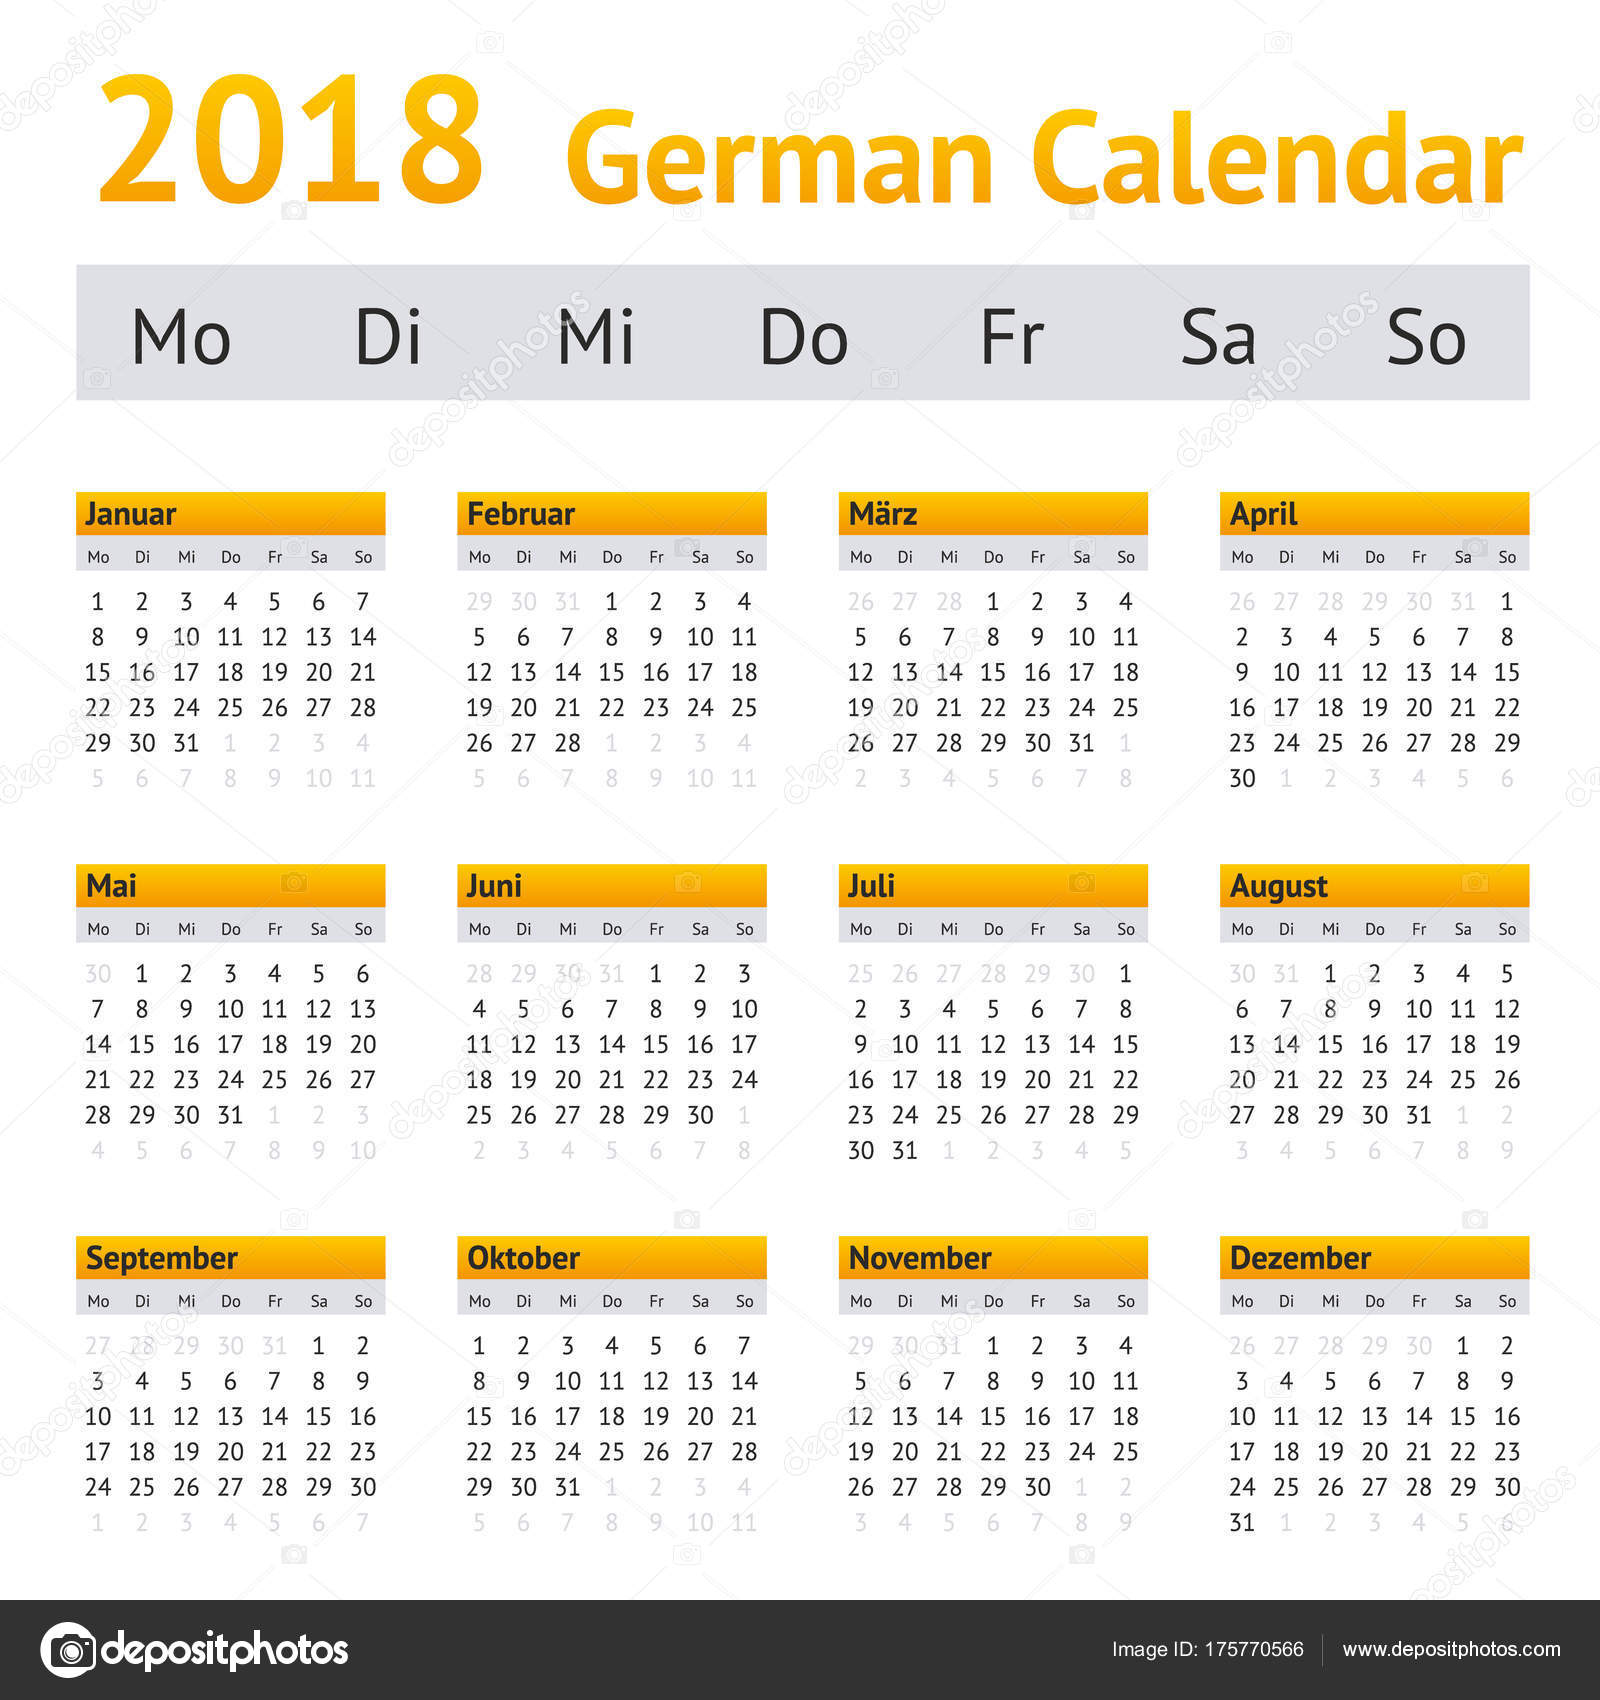 2018 german calendar stock vector